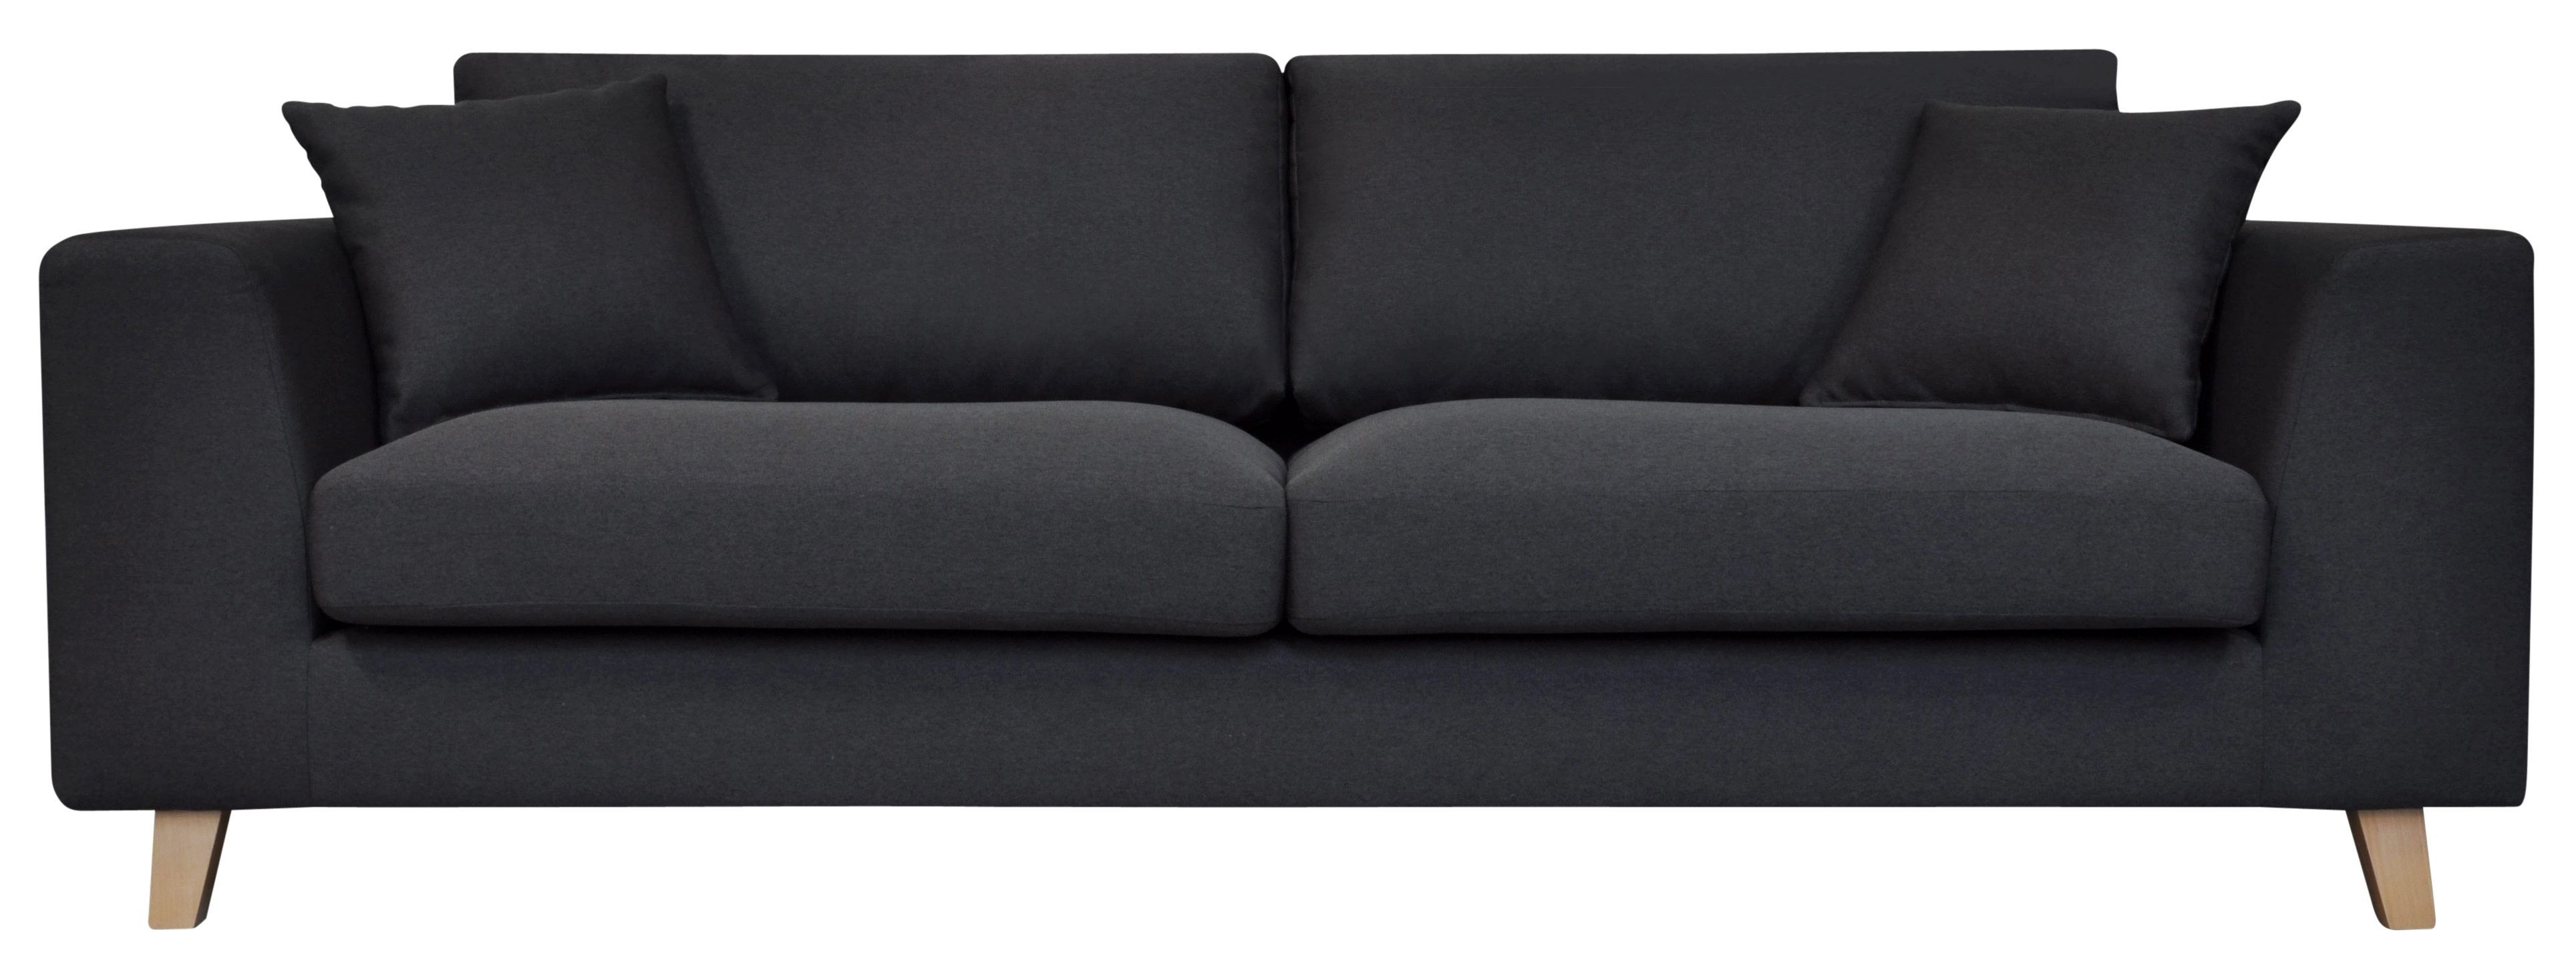 Catalogue But Canapés Canapé 3 Places Bilbo Tissu Gris Anthracite Sofa Sofa Couch